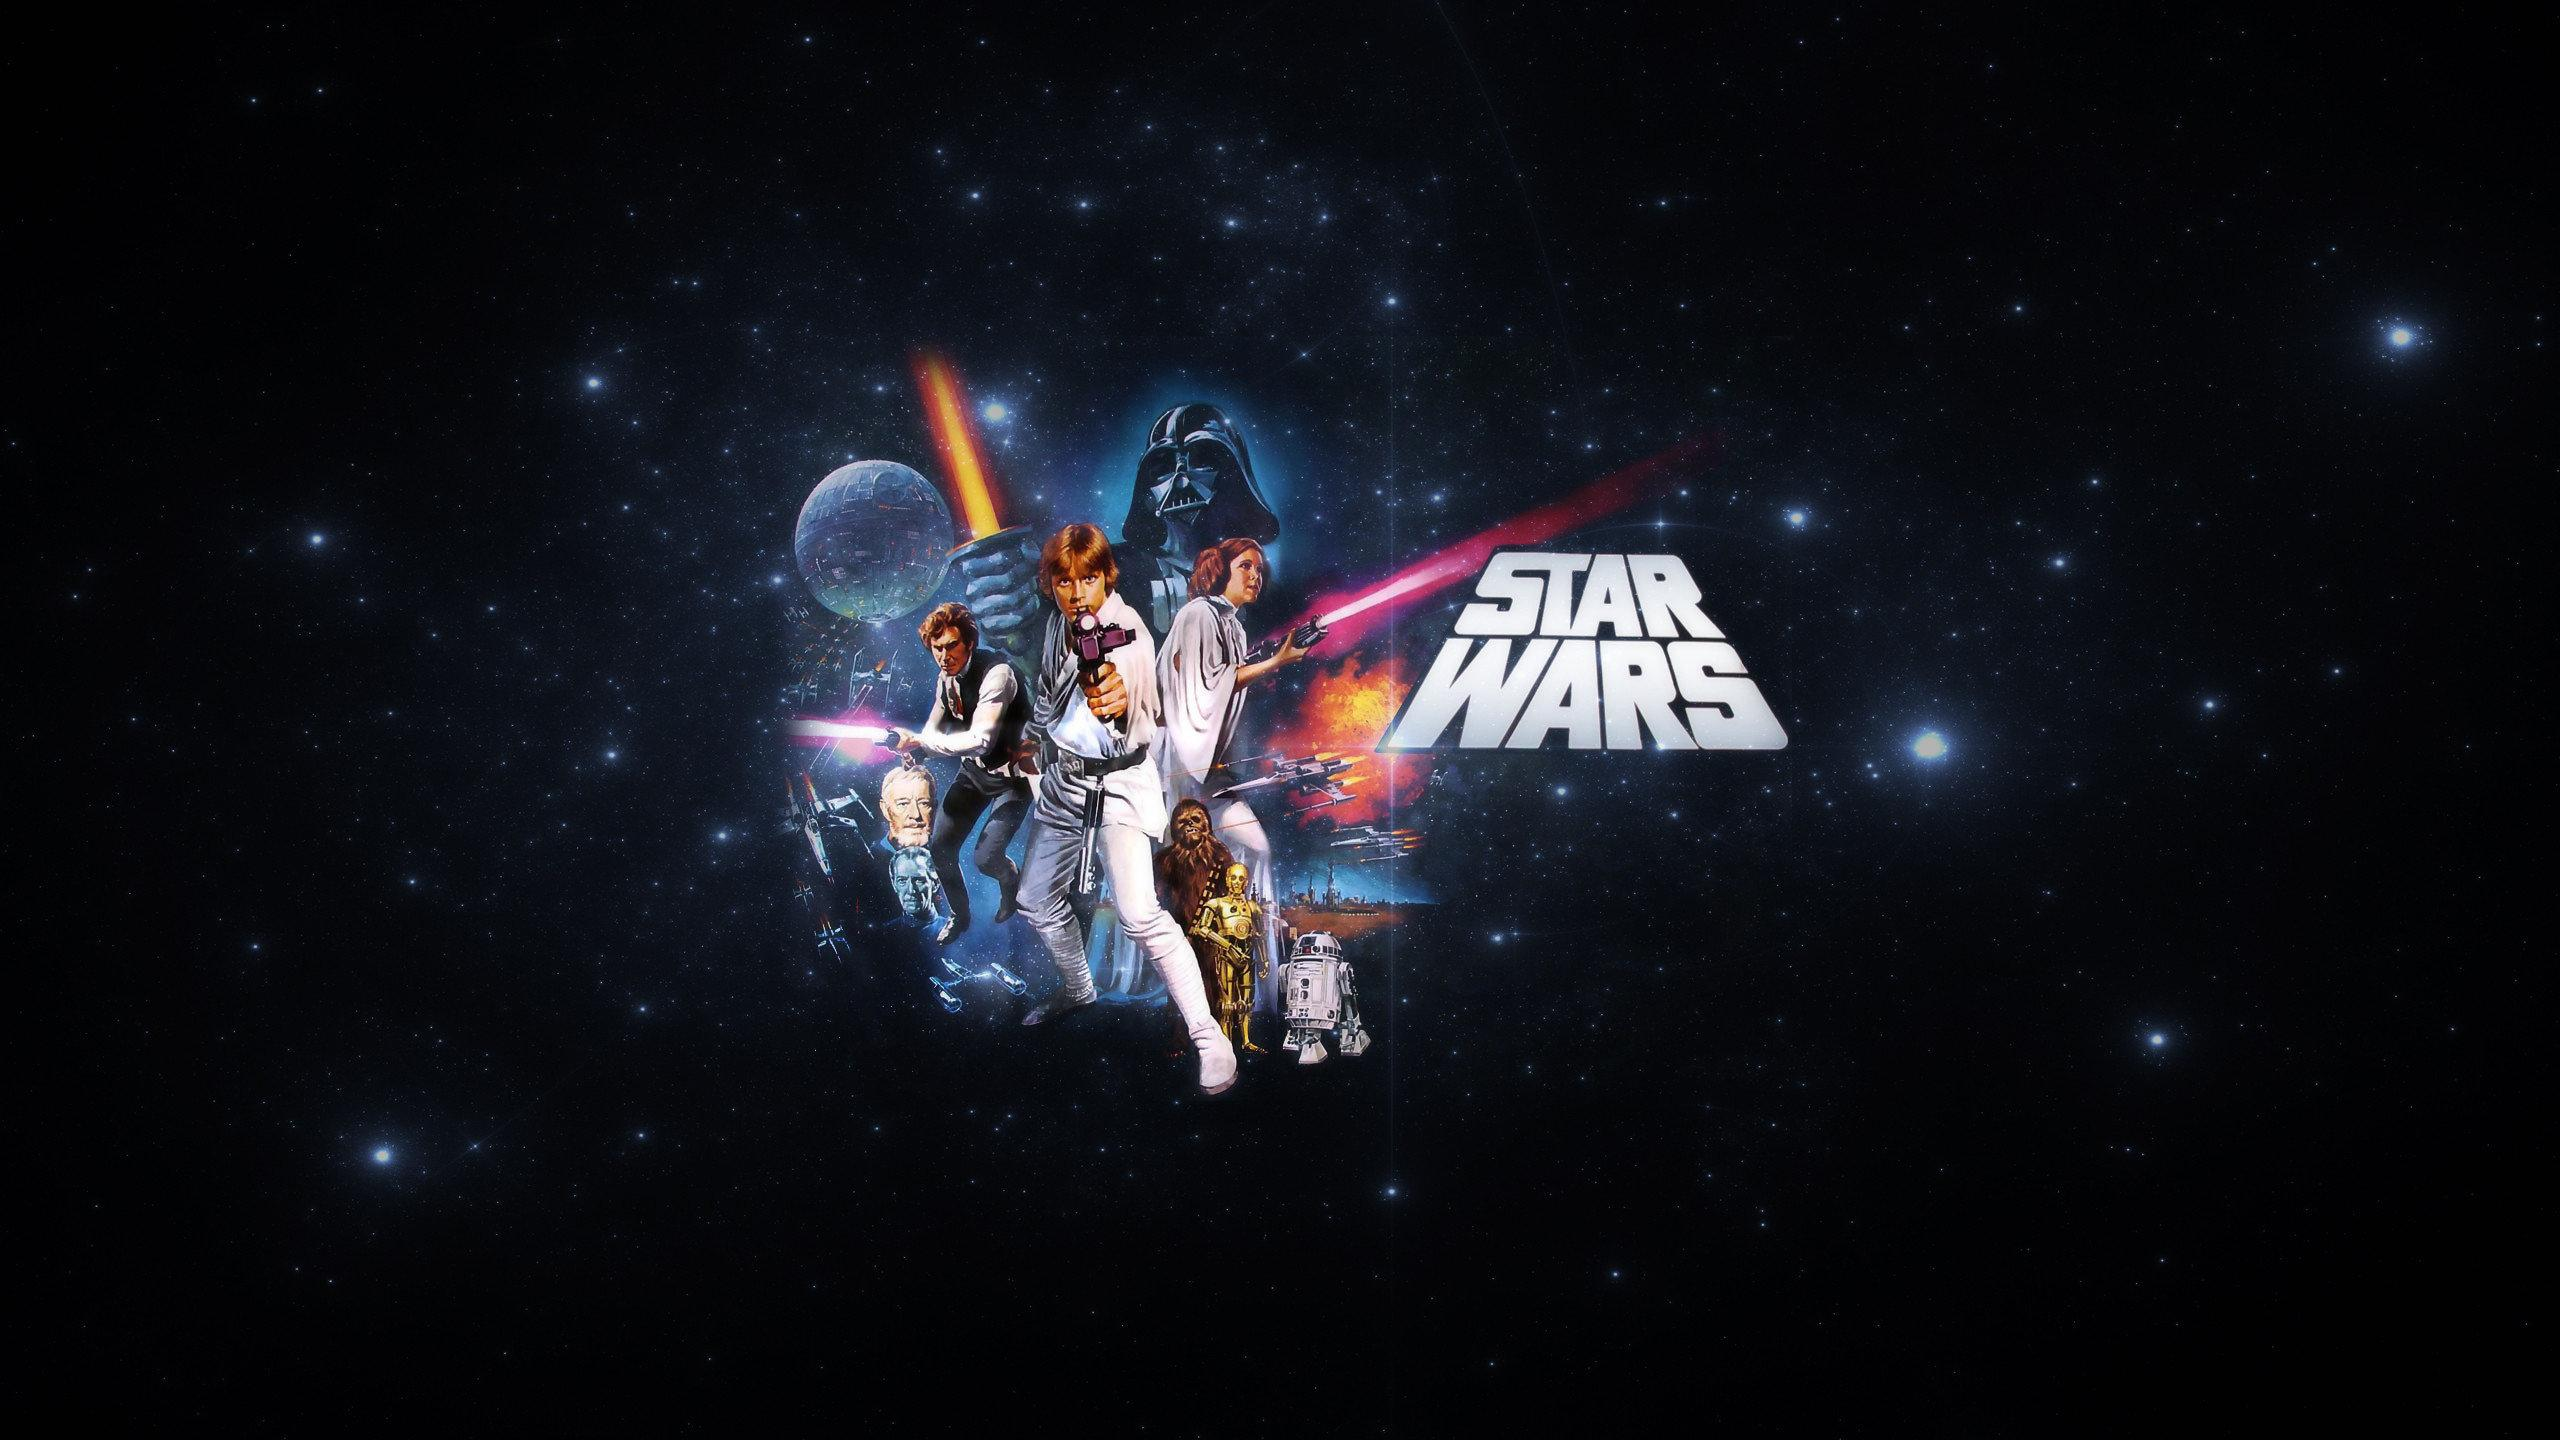 Download Star Wars 2560x1440 Wallpaper Hd Backgrounds Download Itl Cat